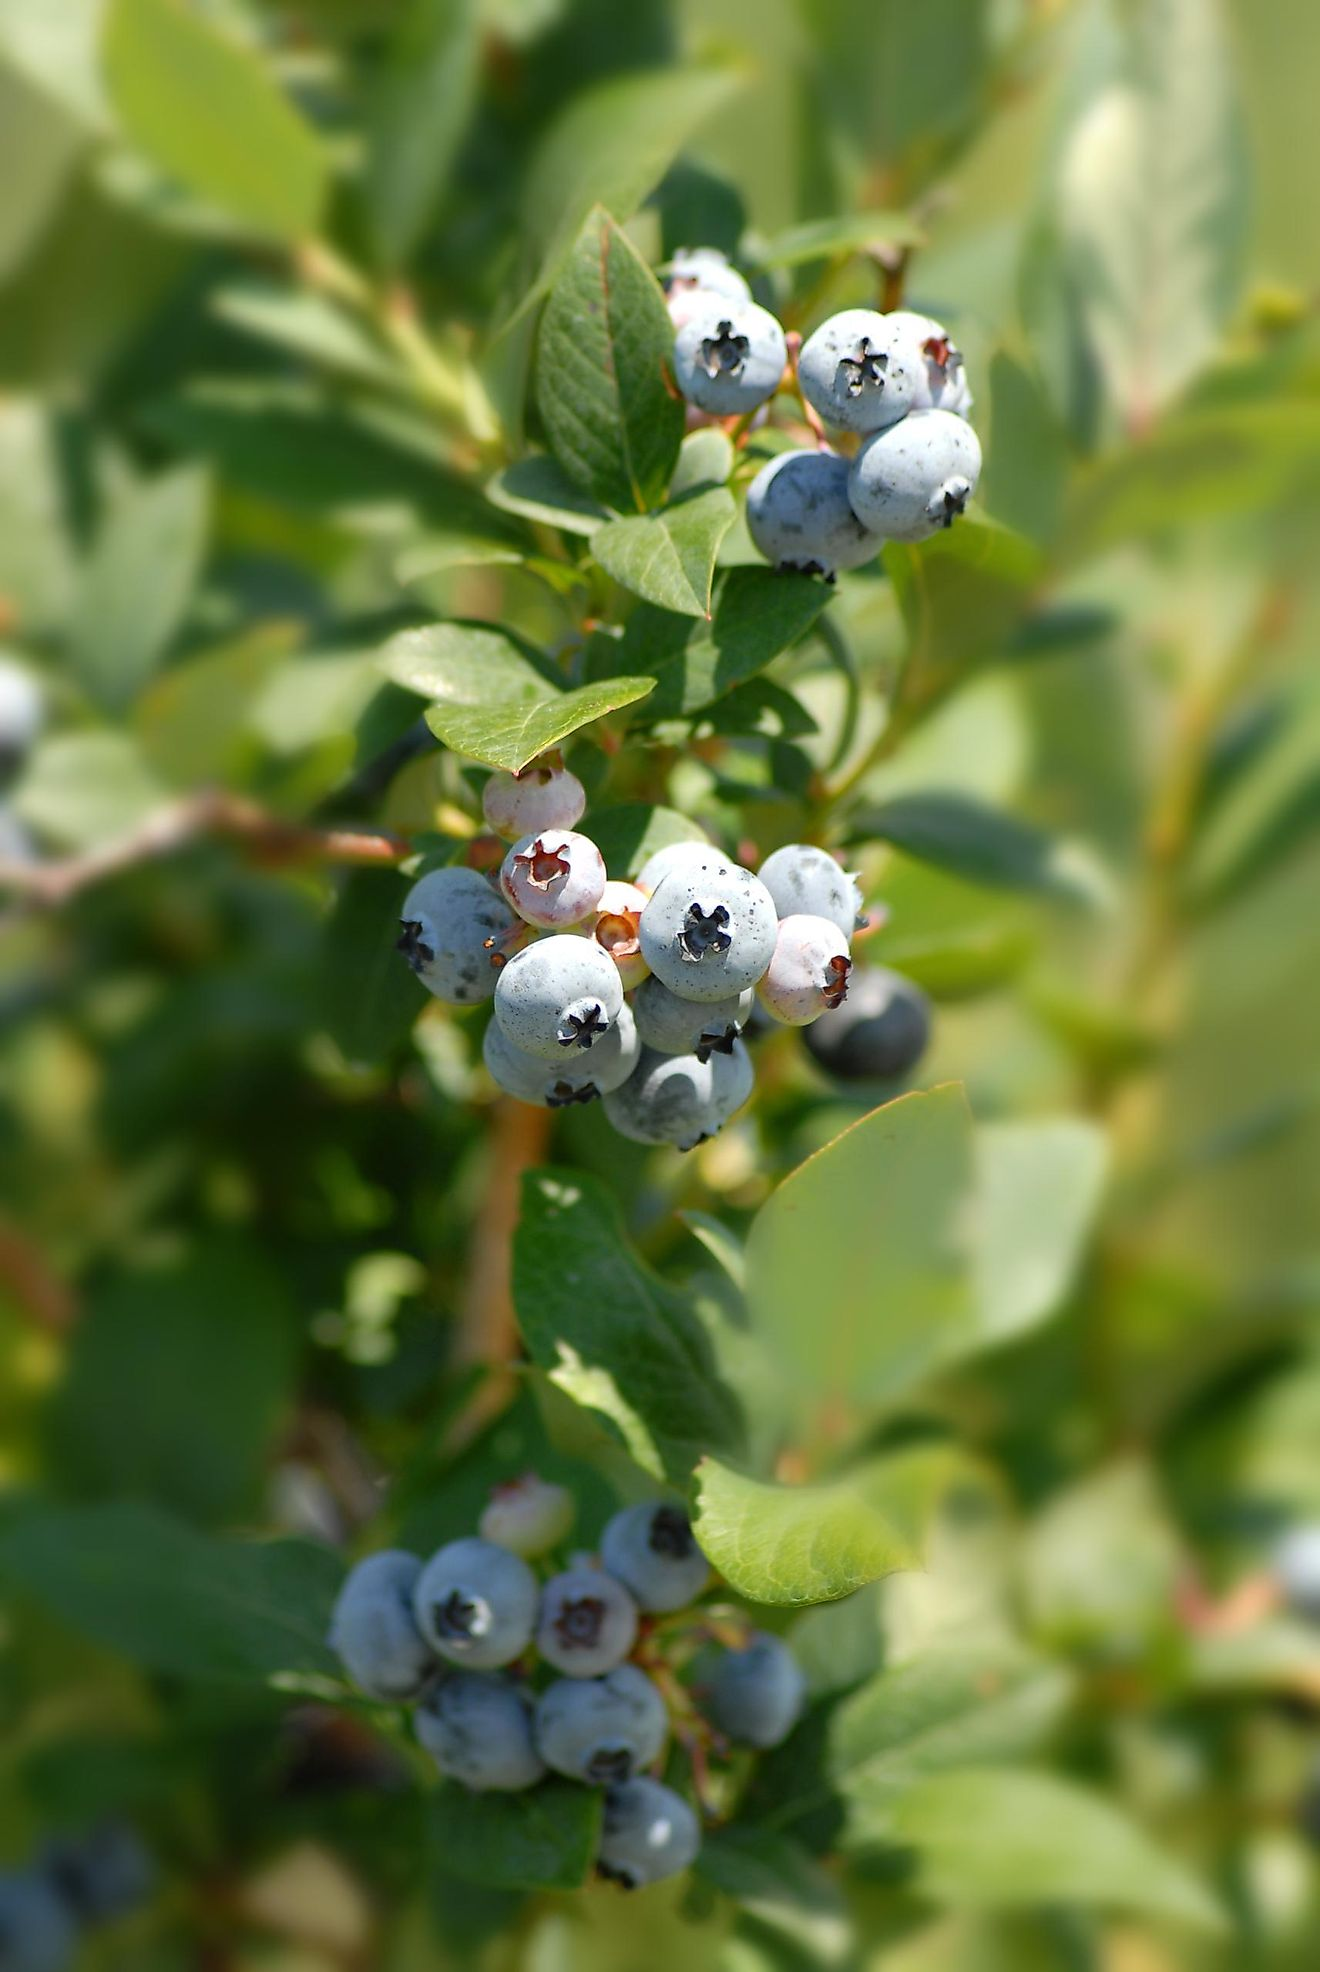 Bushes full of ripe blueberries on a farm in the US state of Michigan.